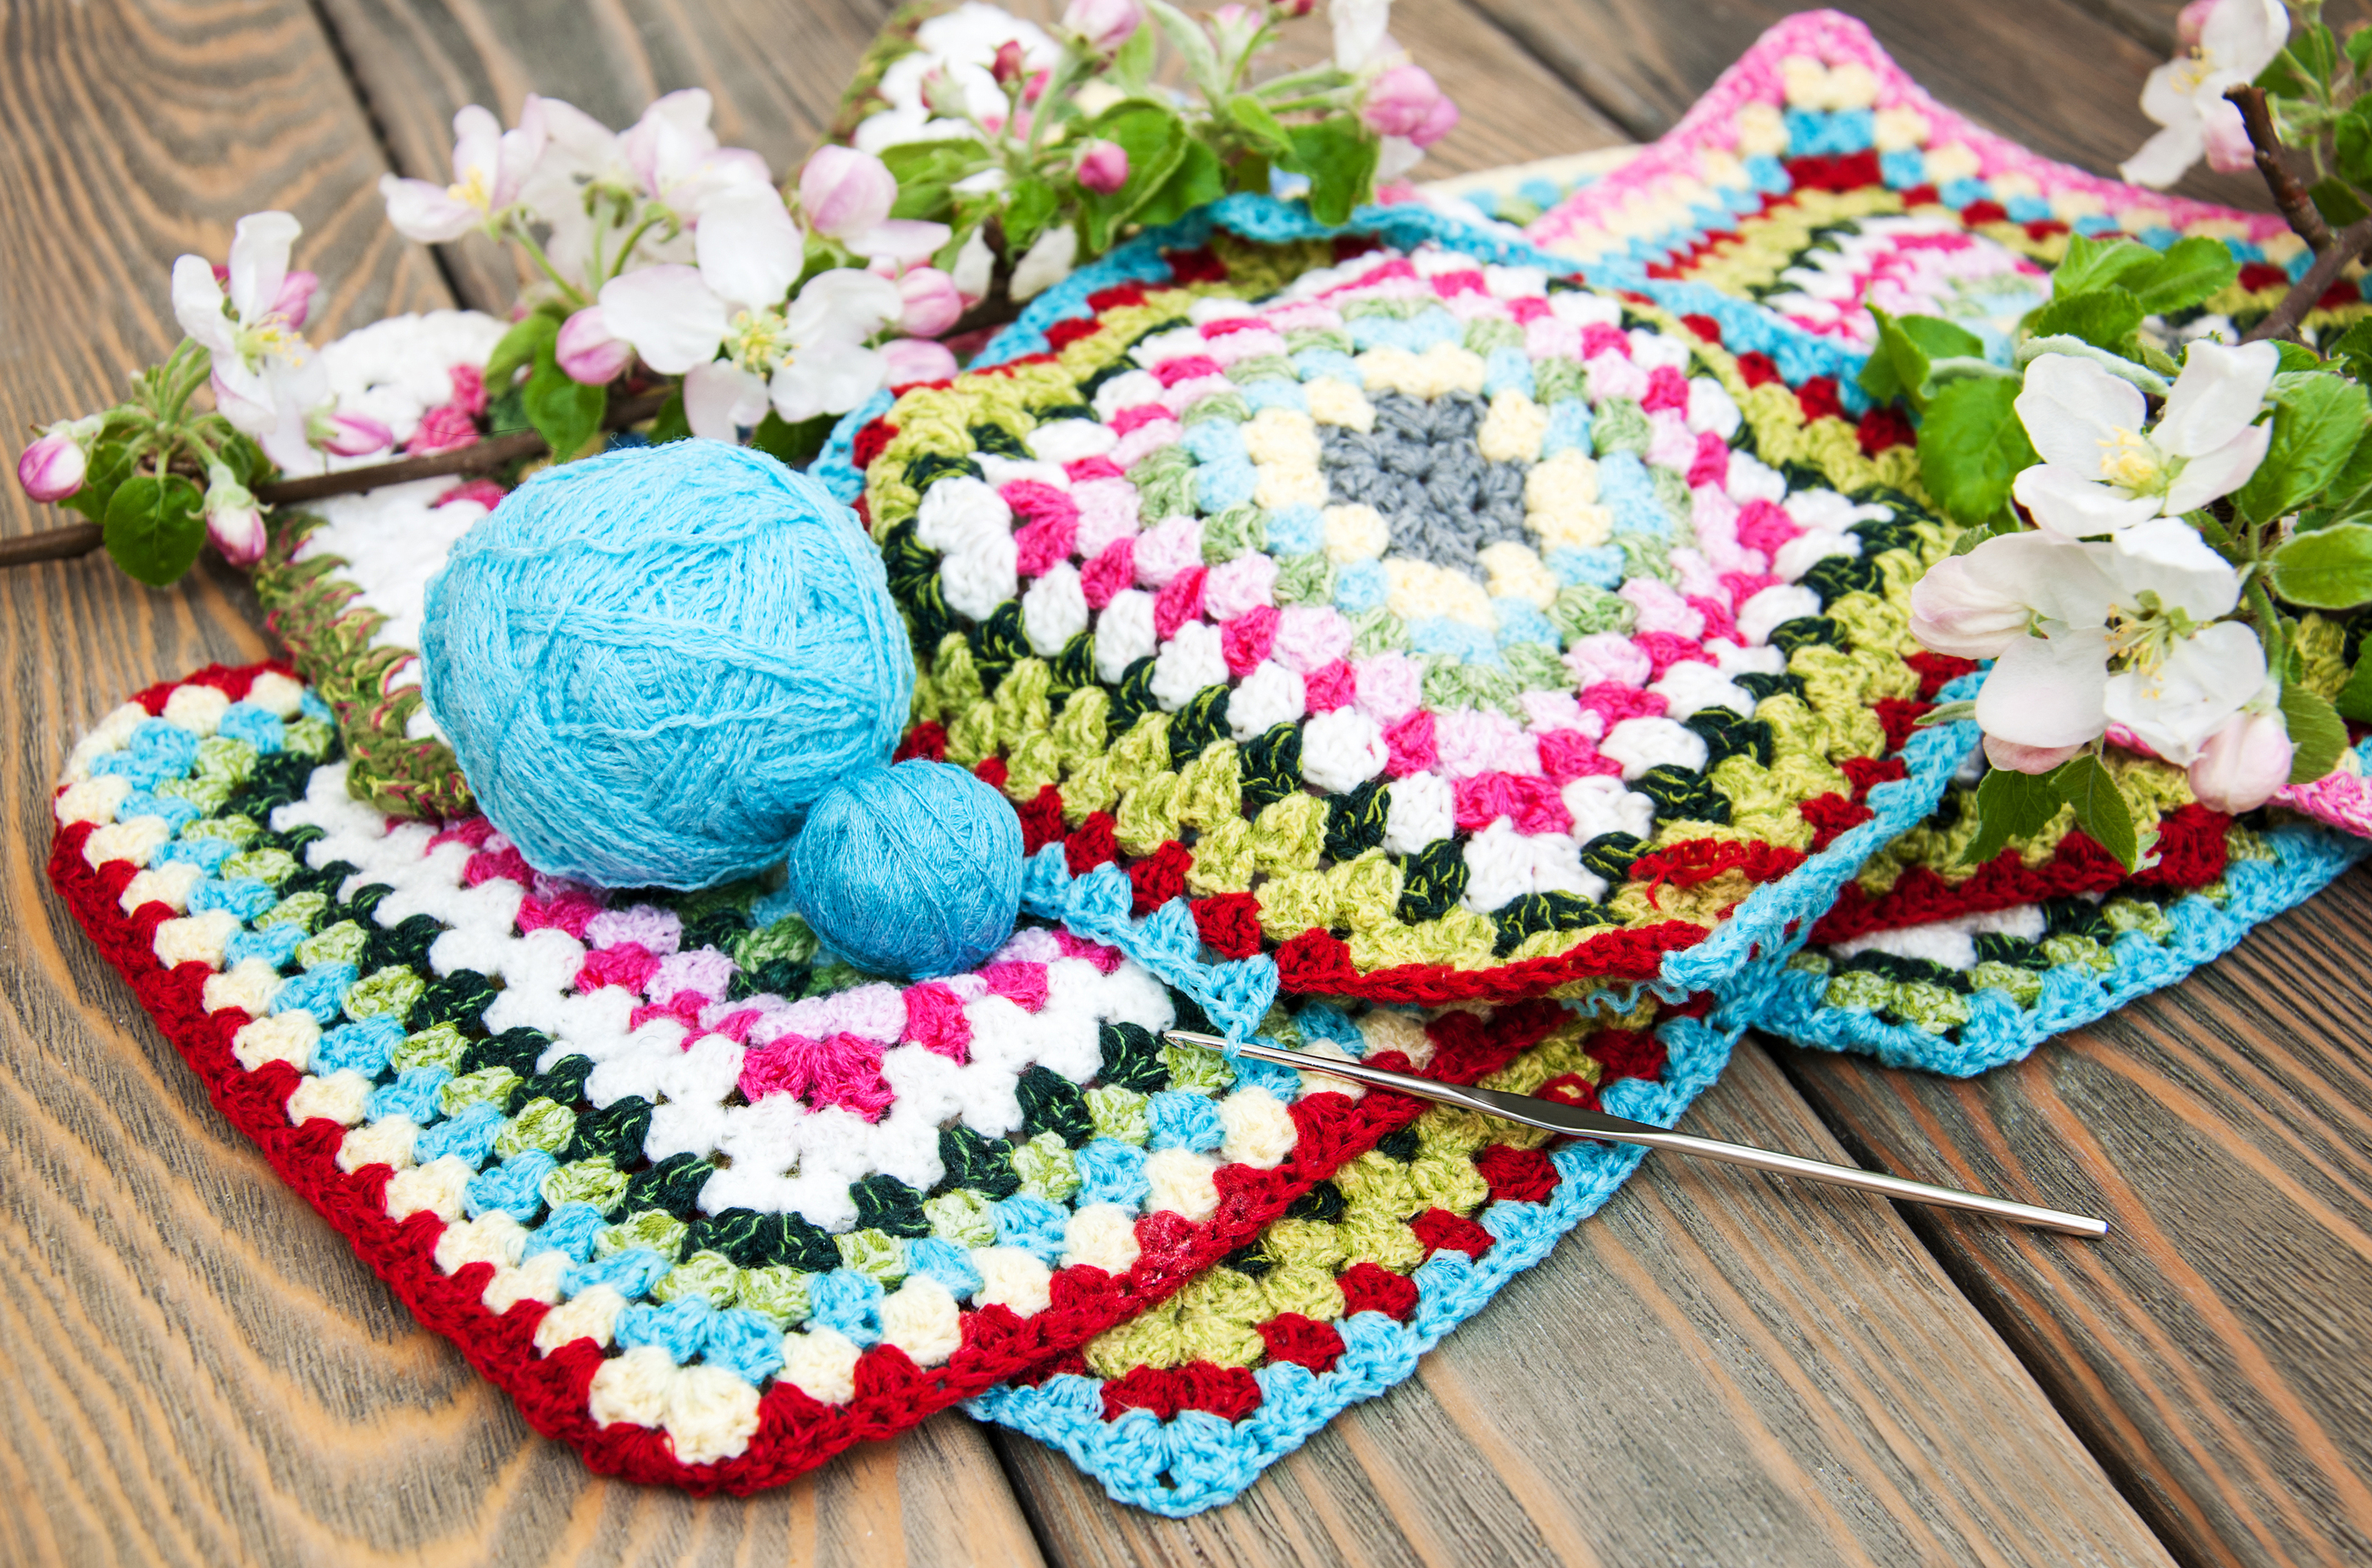 Multicolored Plaid Squares Of Crocheted.jpg